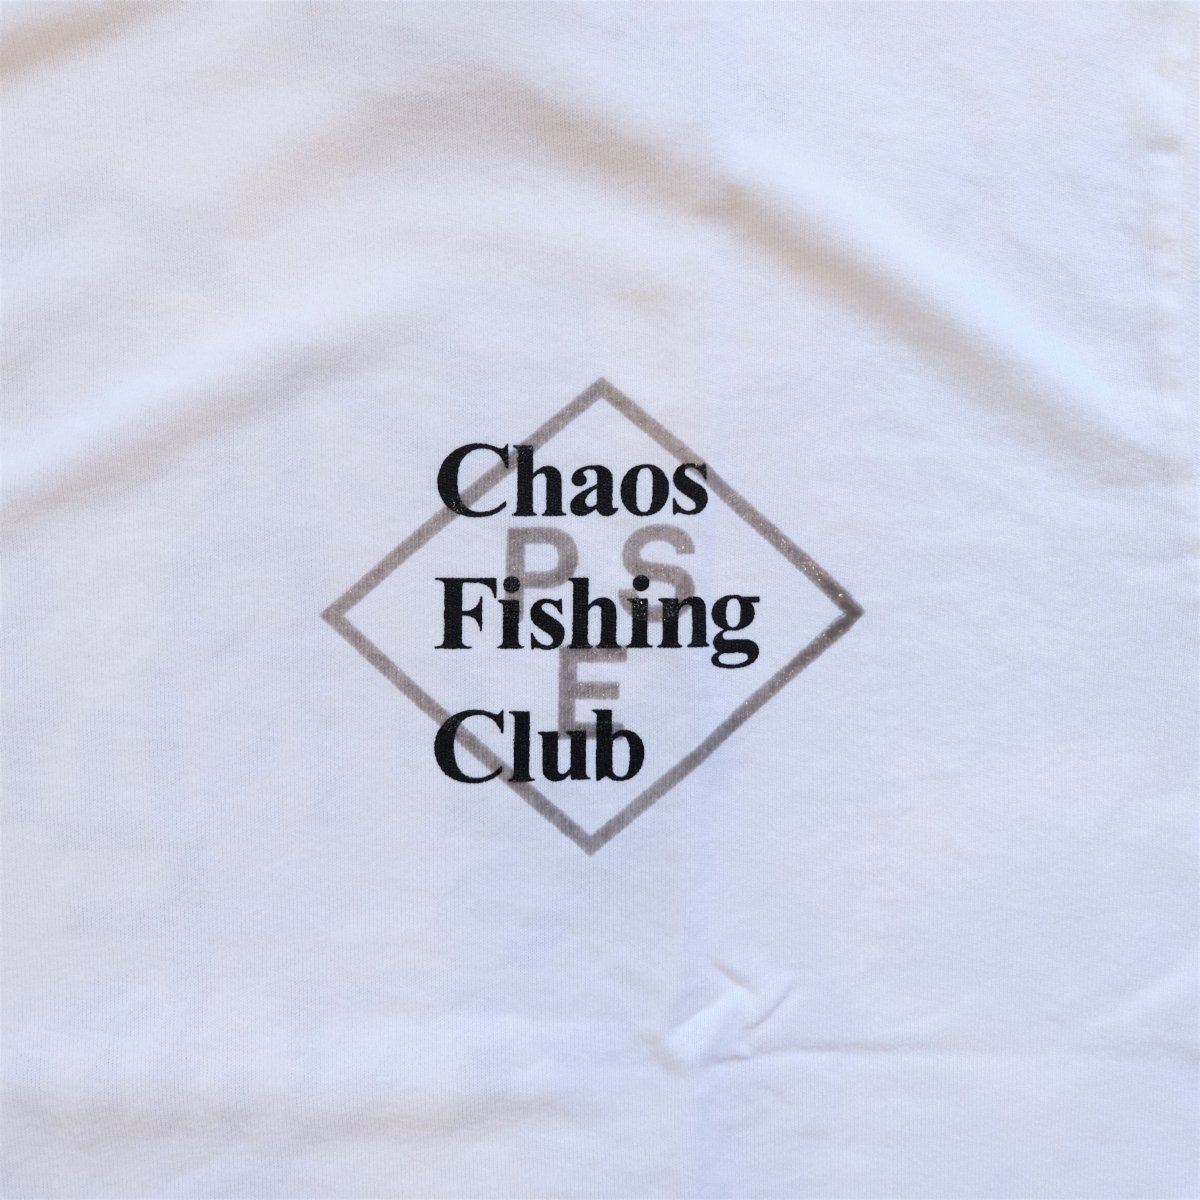 <img class='new_mark_img1' src='https://img.shop-pro.jp/img/new/icons3.gif' style='border:none;display:inline;margin:0px;padding:0px;width:auto;' />PSEUDOS × CHAOS FISHING CLUB / シュードス /  Tシャツ PRINTED PAPER T-SHIRT SS 【WHITE】